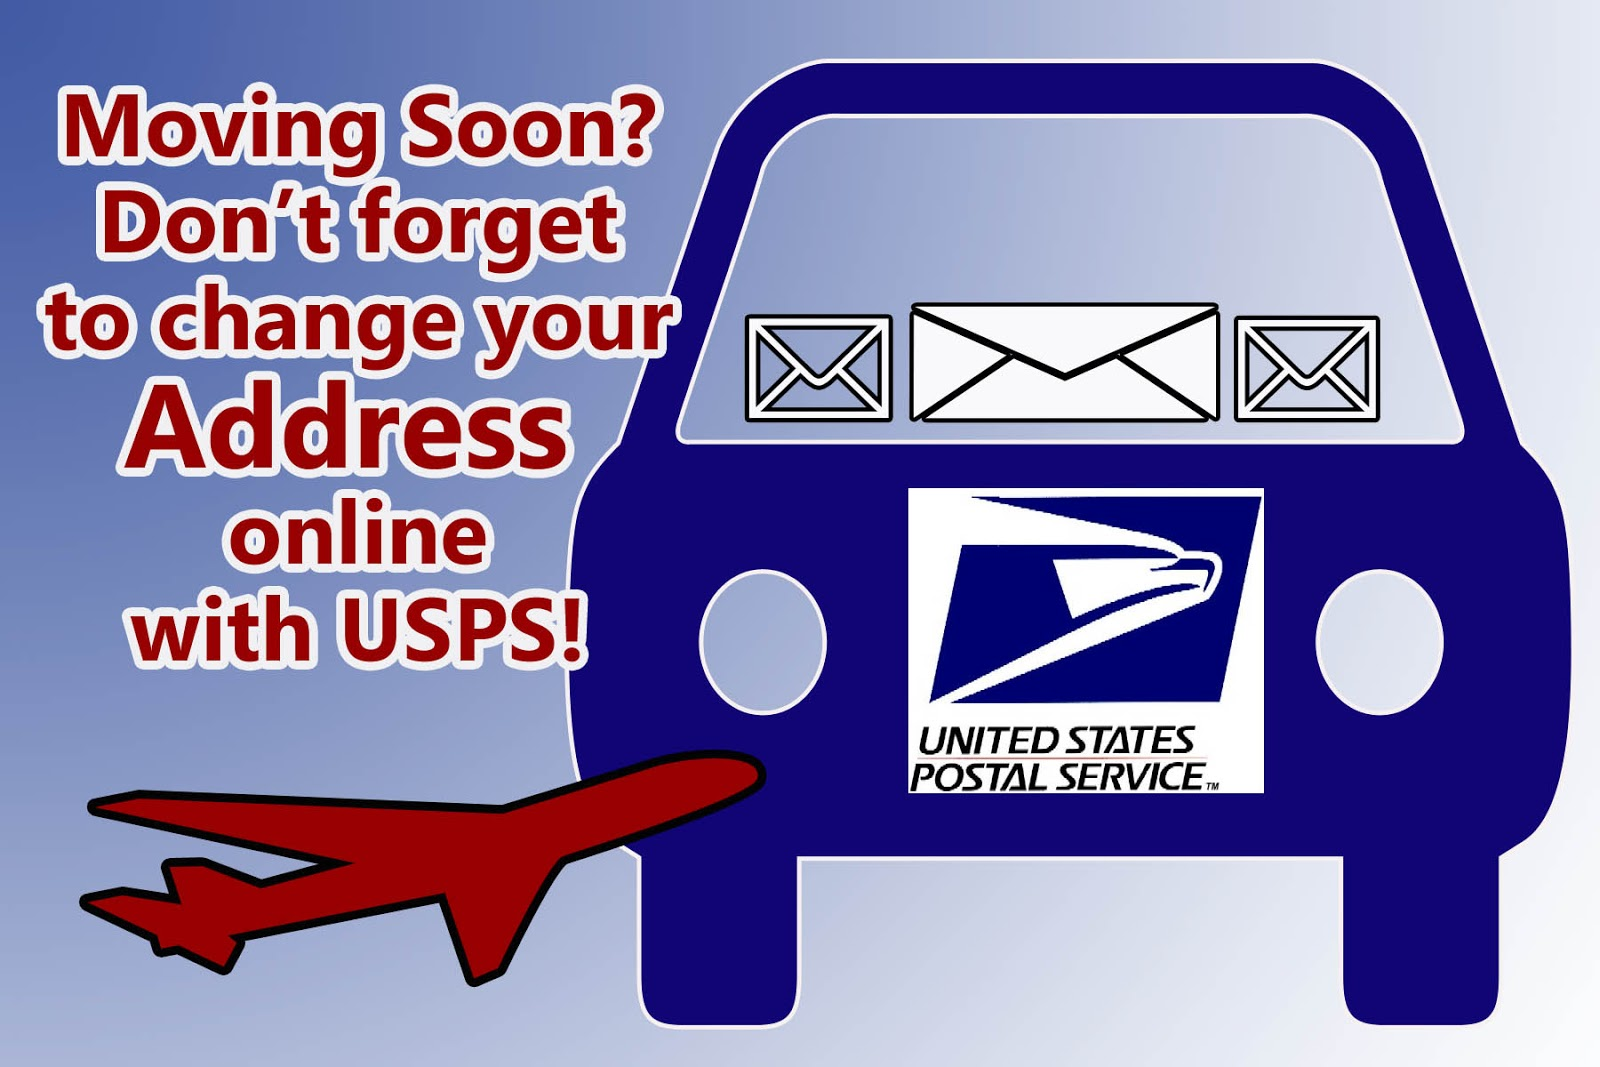 How To Change Your Address With The United States Postal Service